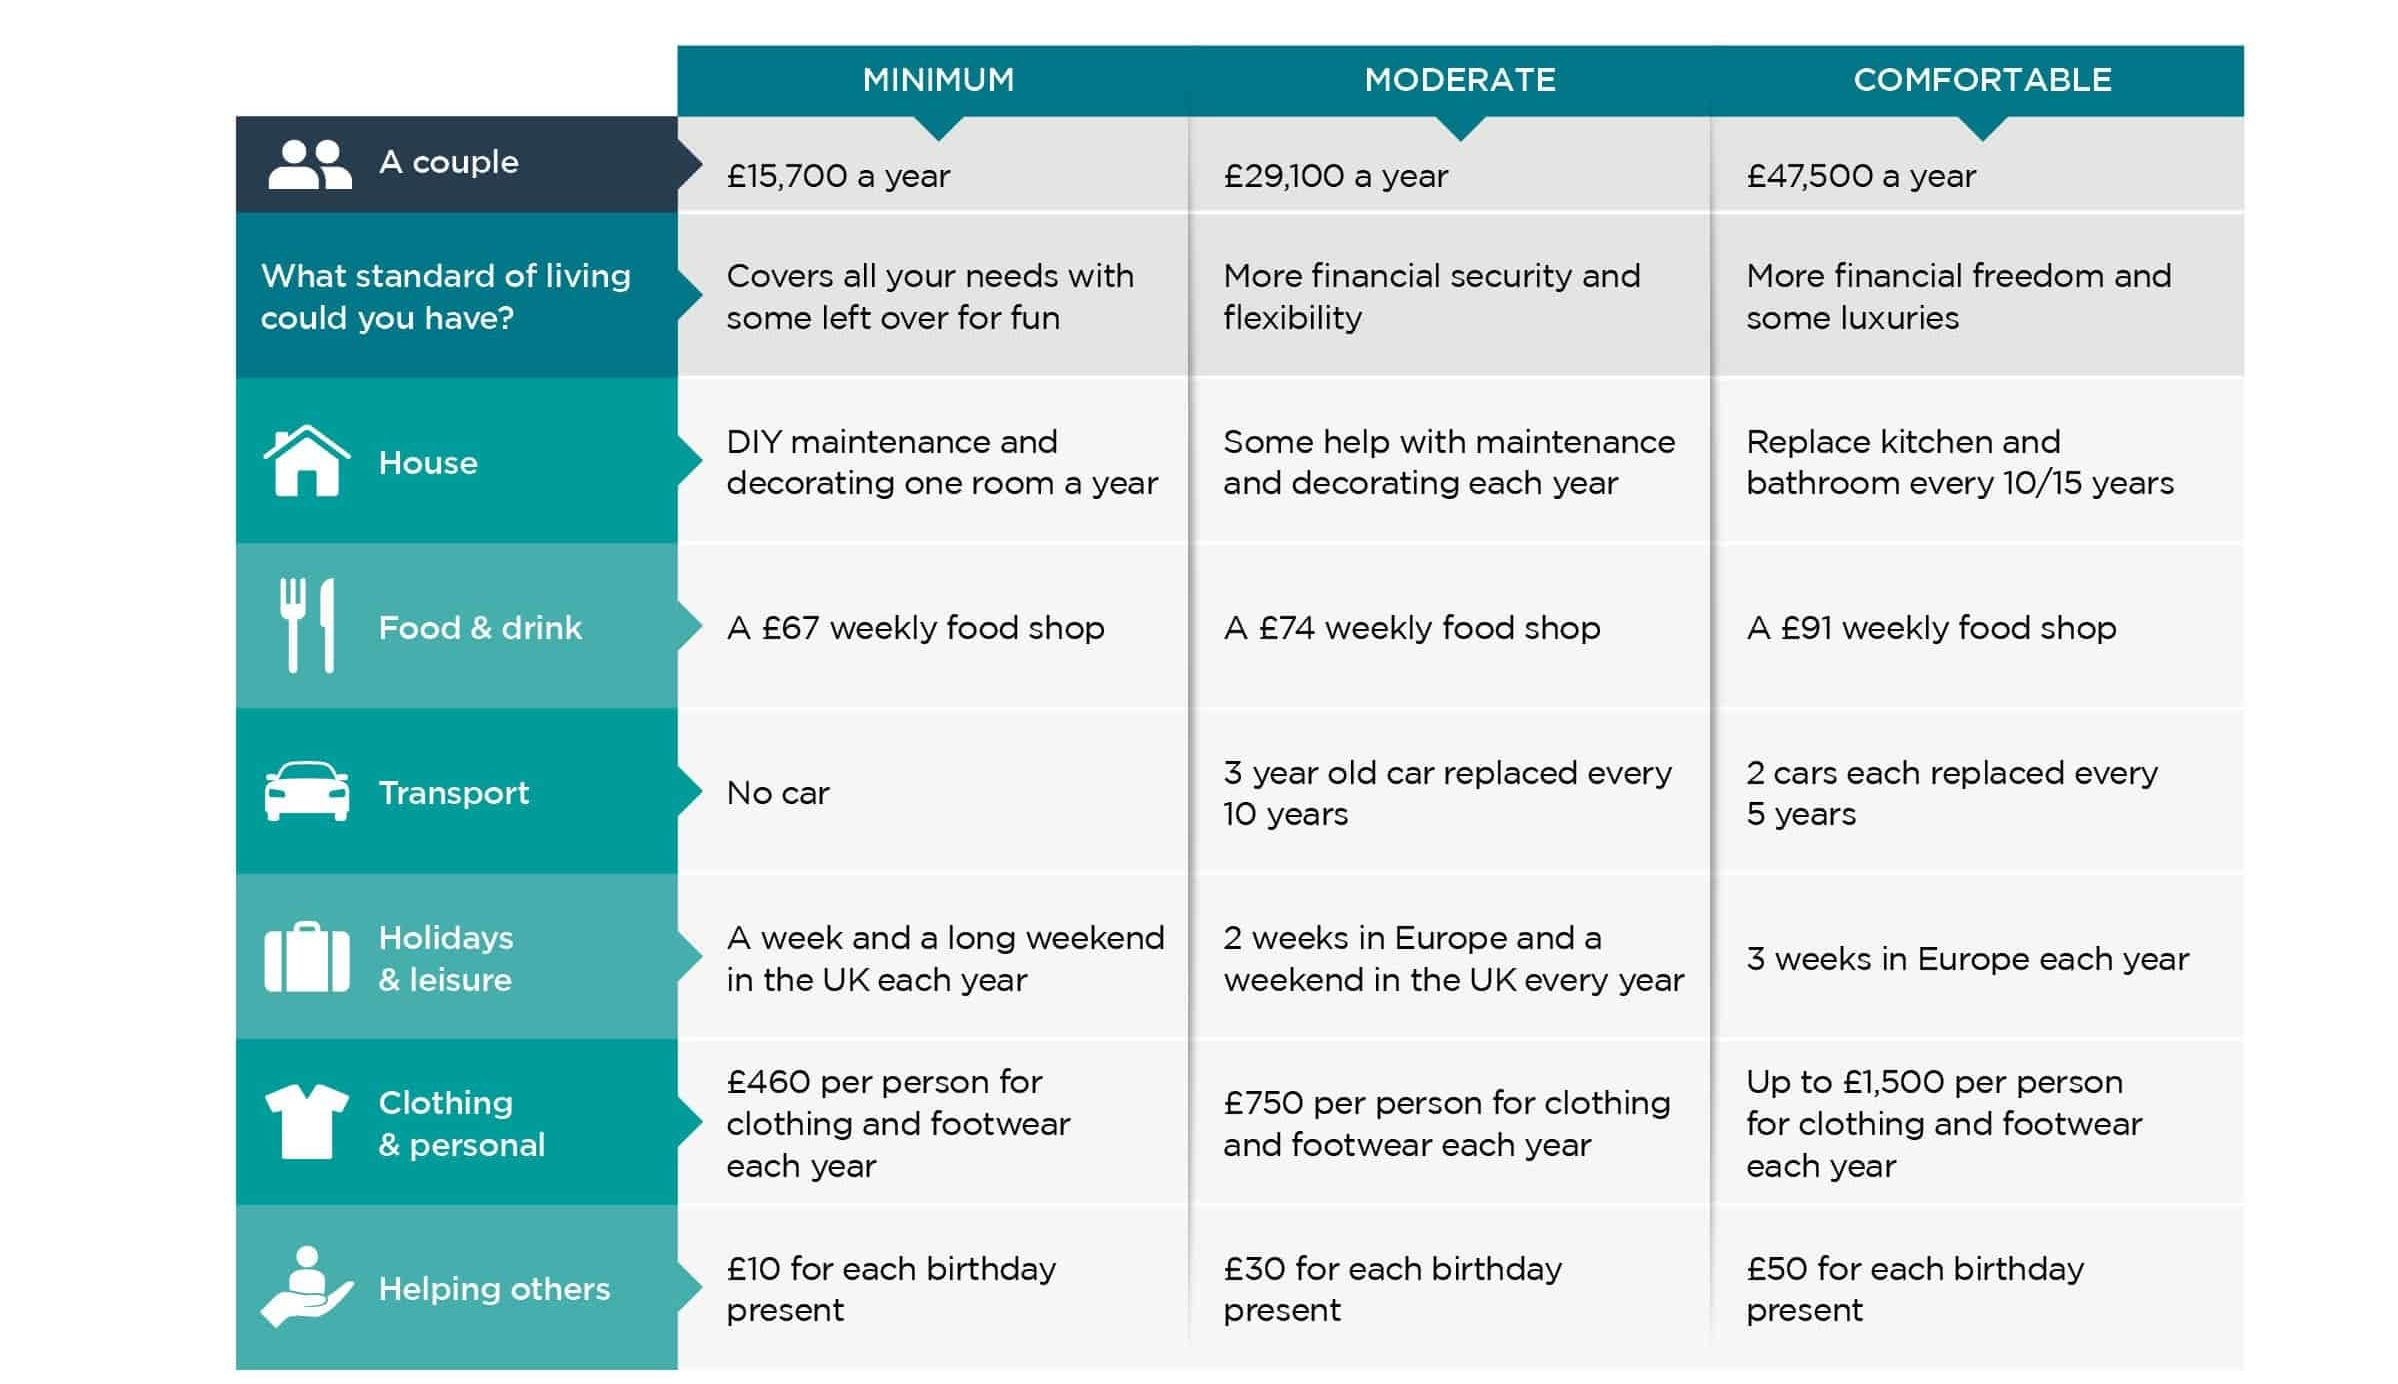 Levels of pension for couples from minimum to moderate to comfortable.